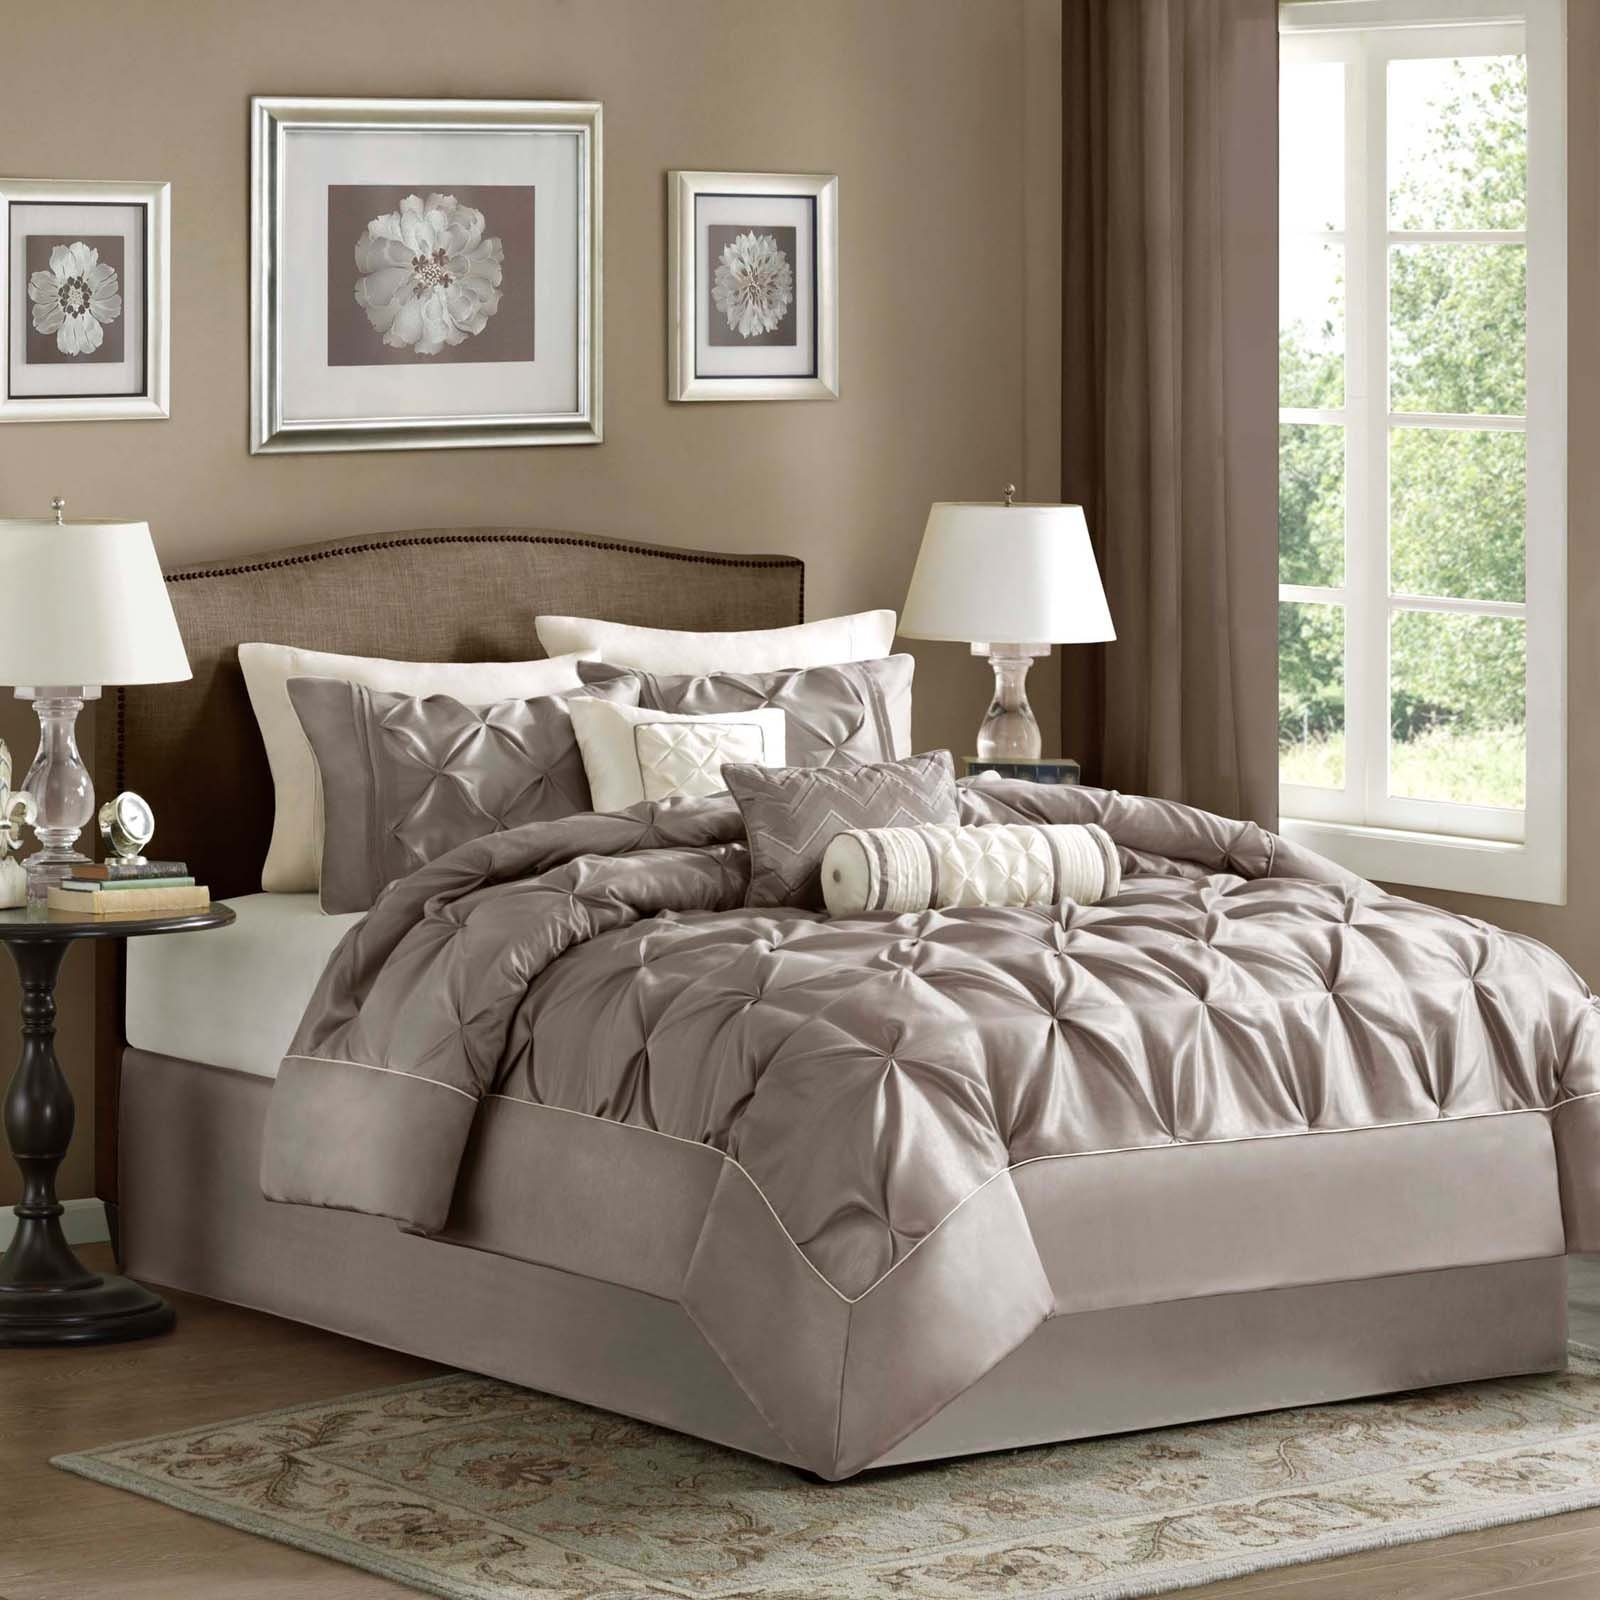 Bed Bath and Beyond Queen Comforter | Luxury Bedspreads | Luxury Comforter Sets